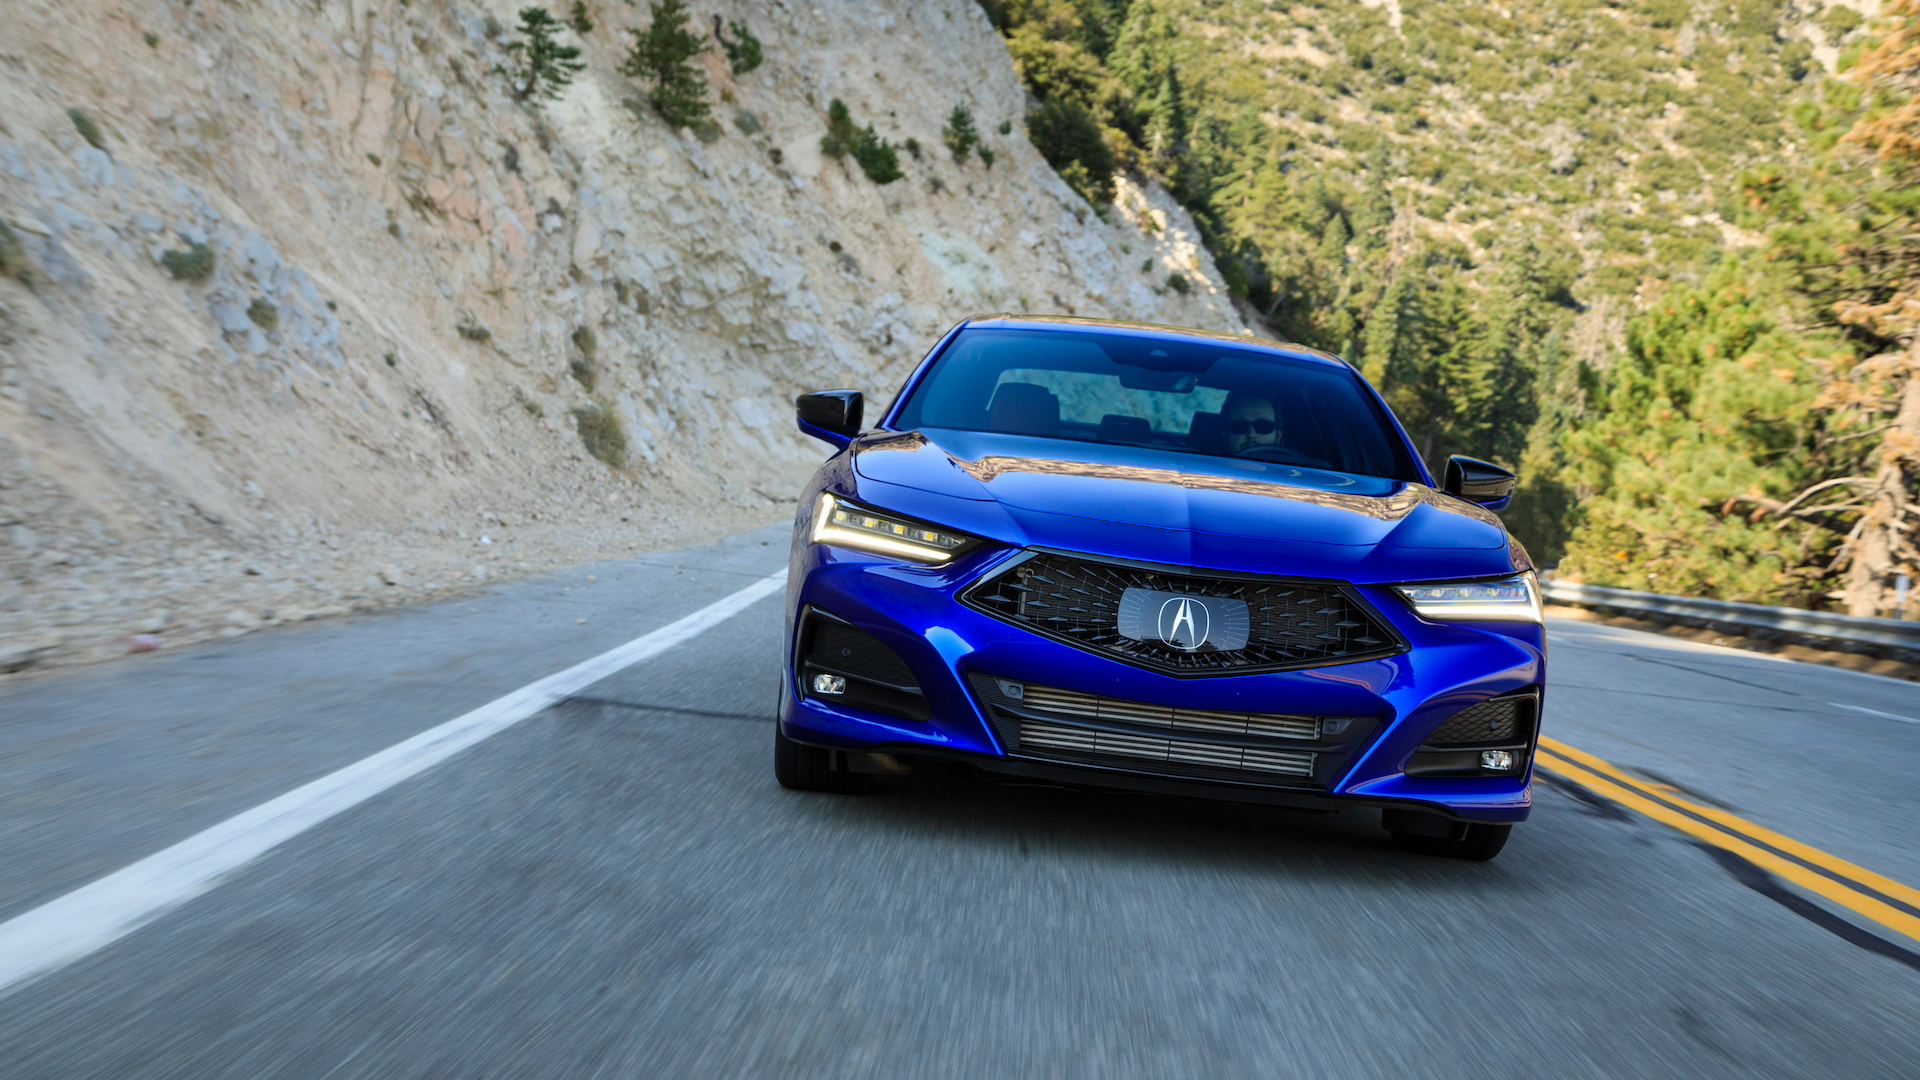 2021 Acura TLX A-Spec SH-AWD